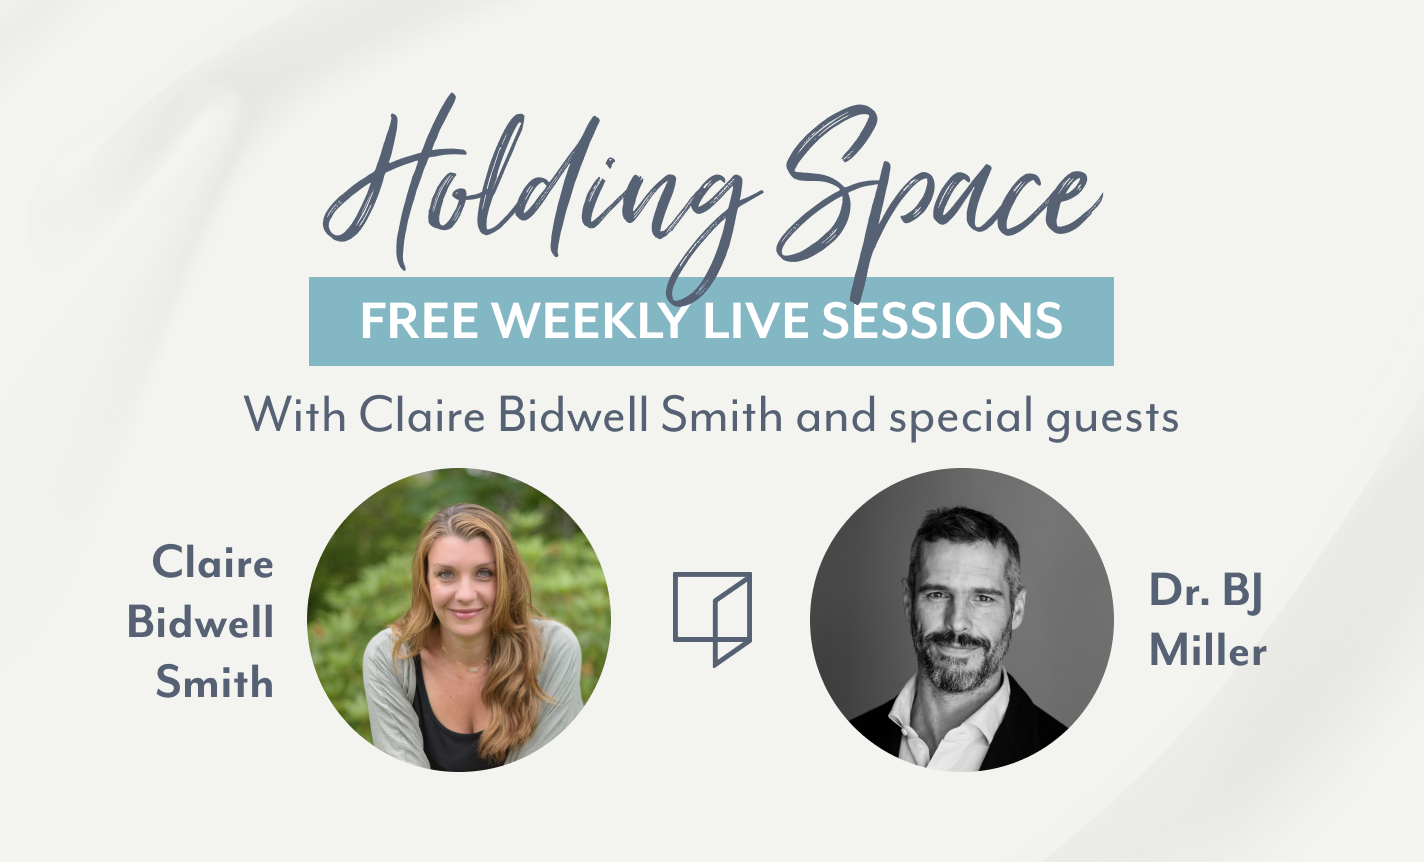 Holding Space with Claire Bidwell Smith & Dr. BJ Miller